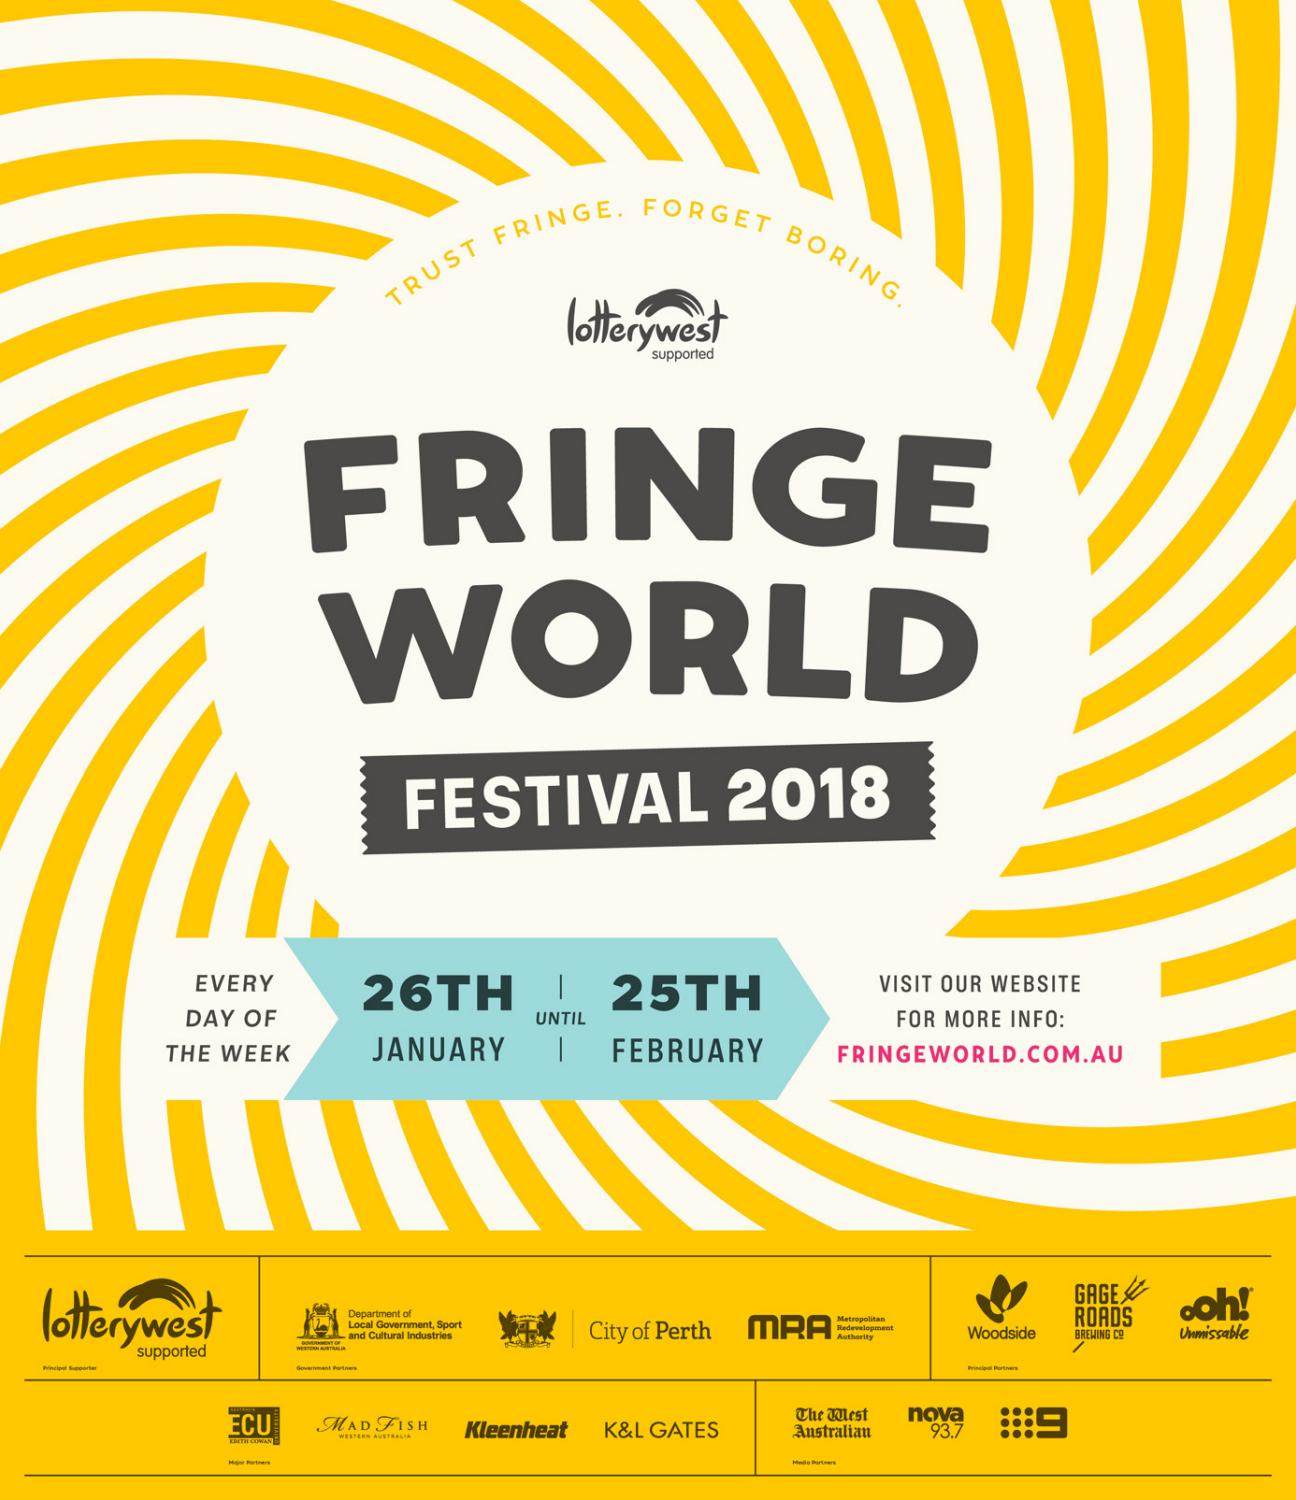 5a5a6db1576 FRINGE WORLD 2018 Festival Guide by Fringe World Festival - issuu